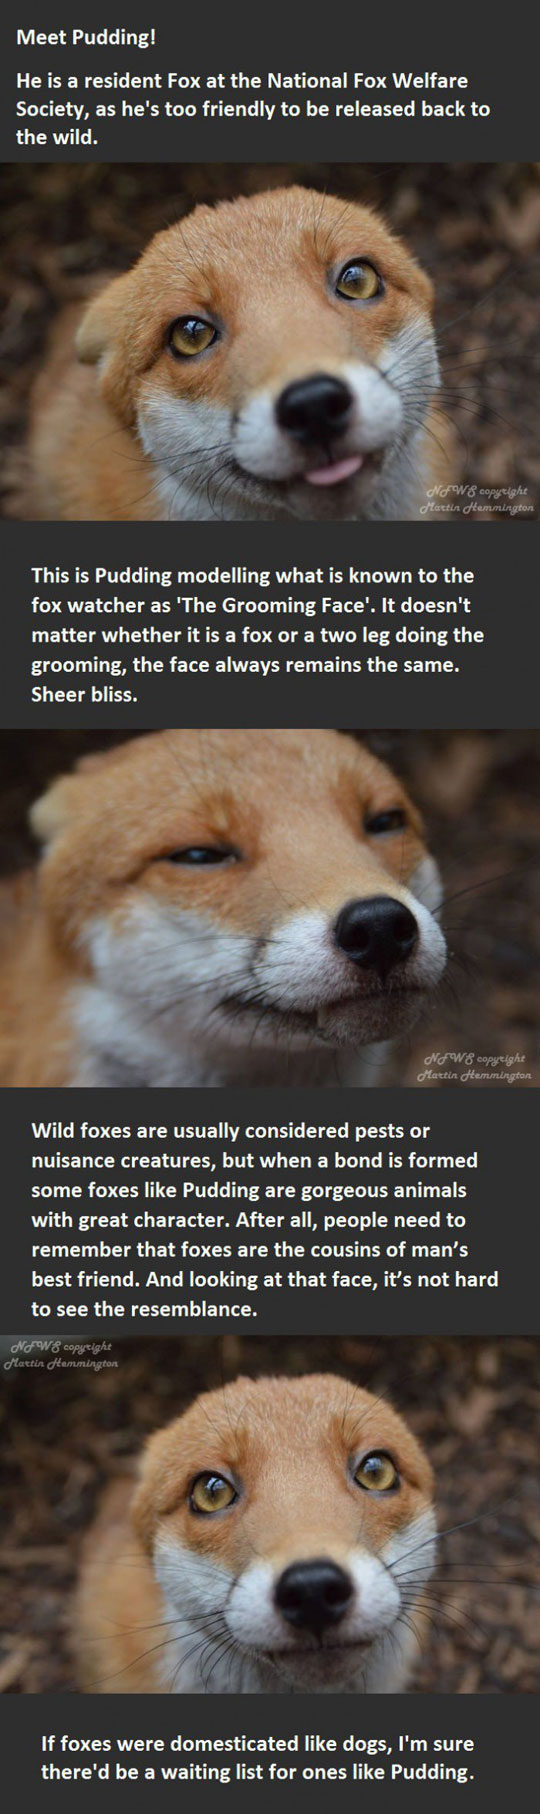 Foxes Are Misunderstood Creatures